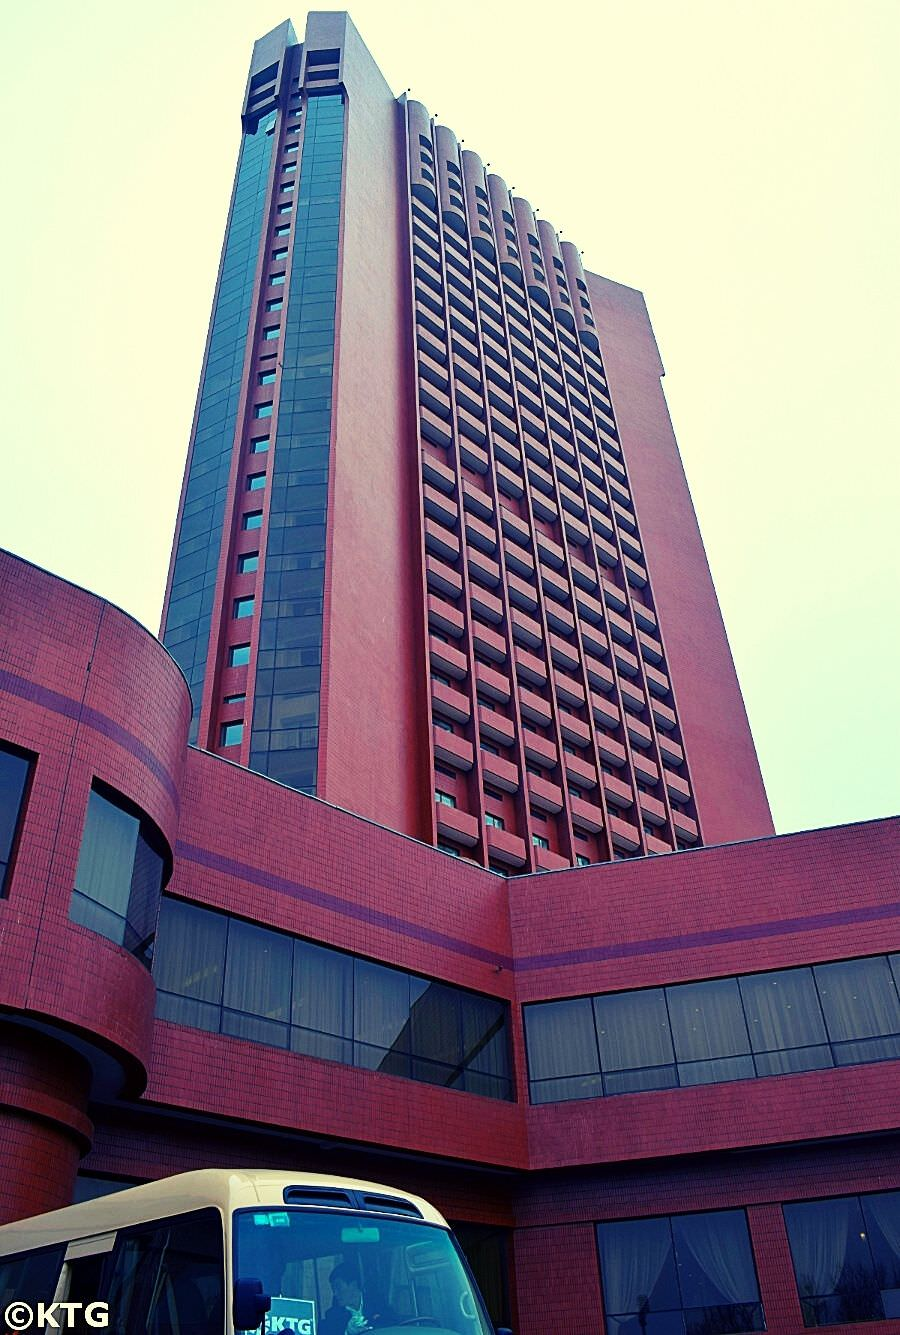 Sosan Hotel in Pyongyang capital of North Korea